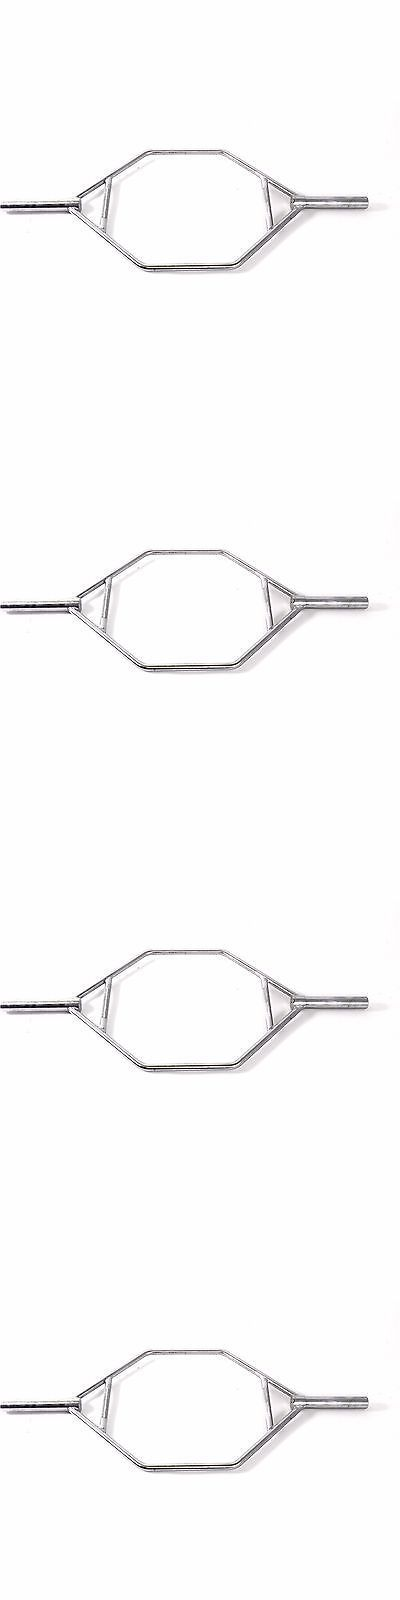 Barbells and Attachments 137864: Weight Lift Bar Squat Train Muscle Trap Hex Dumbbell Gym Deadlift Shrug Barbell -> BUY IT NOW ONLY: $87.95 on eBay! #SquatsAndMore